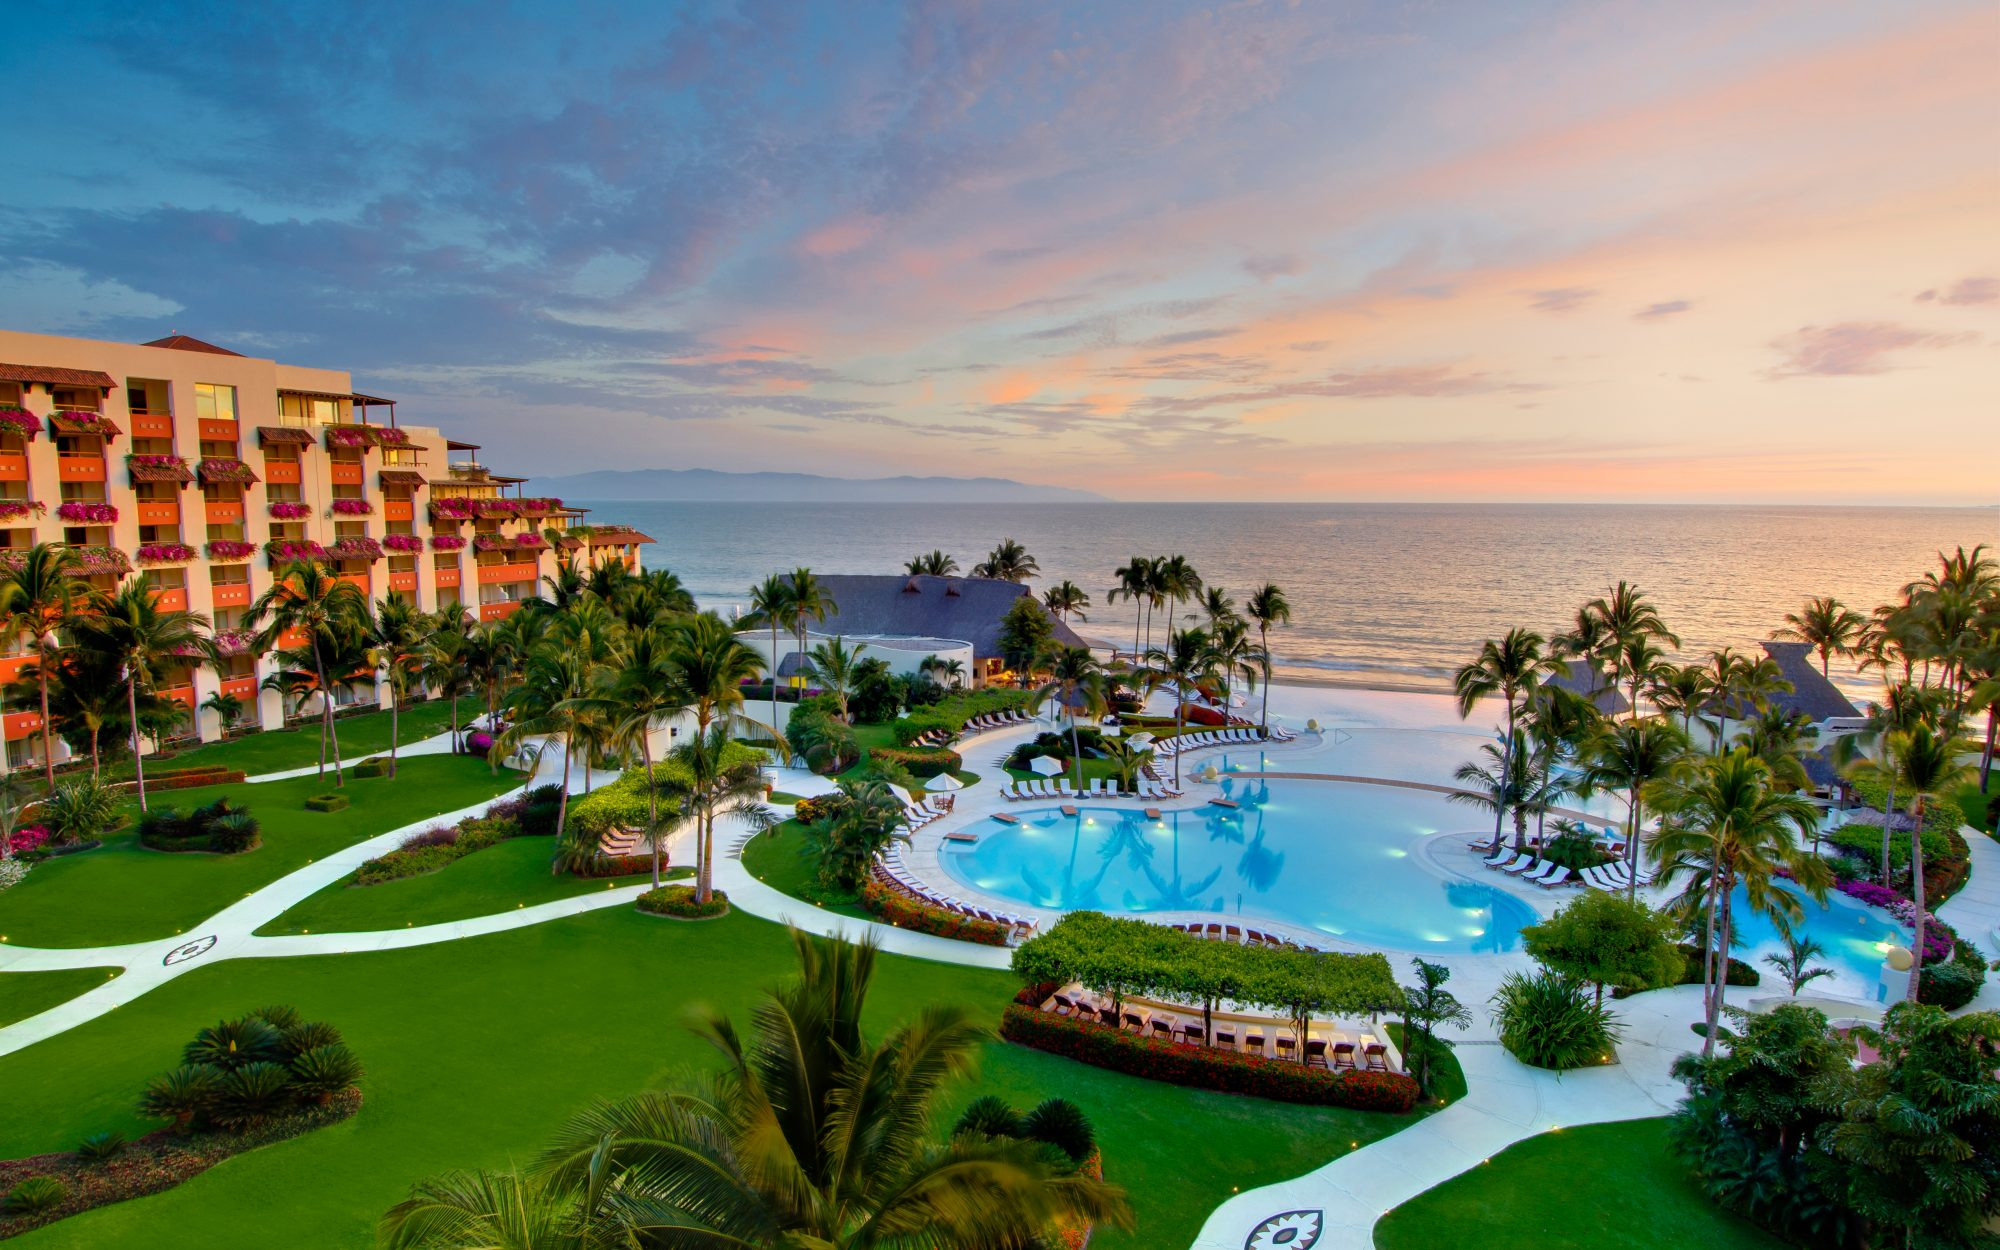 Best Mexico Beach Resorts: Grand Velas Riviera Nayarit